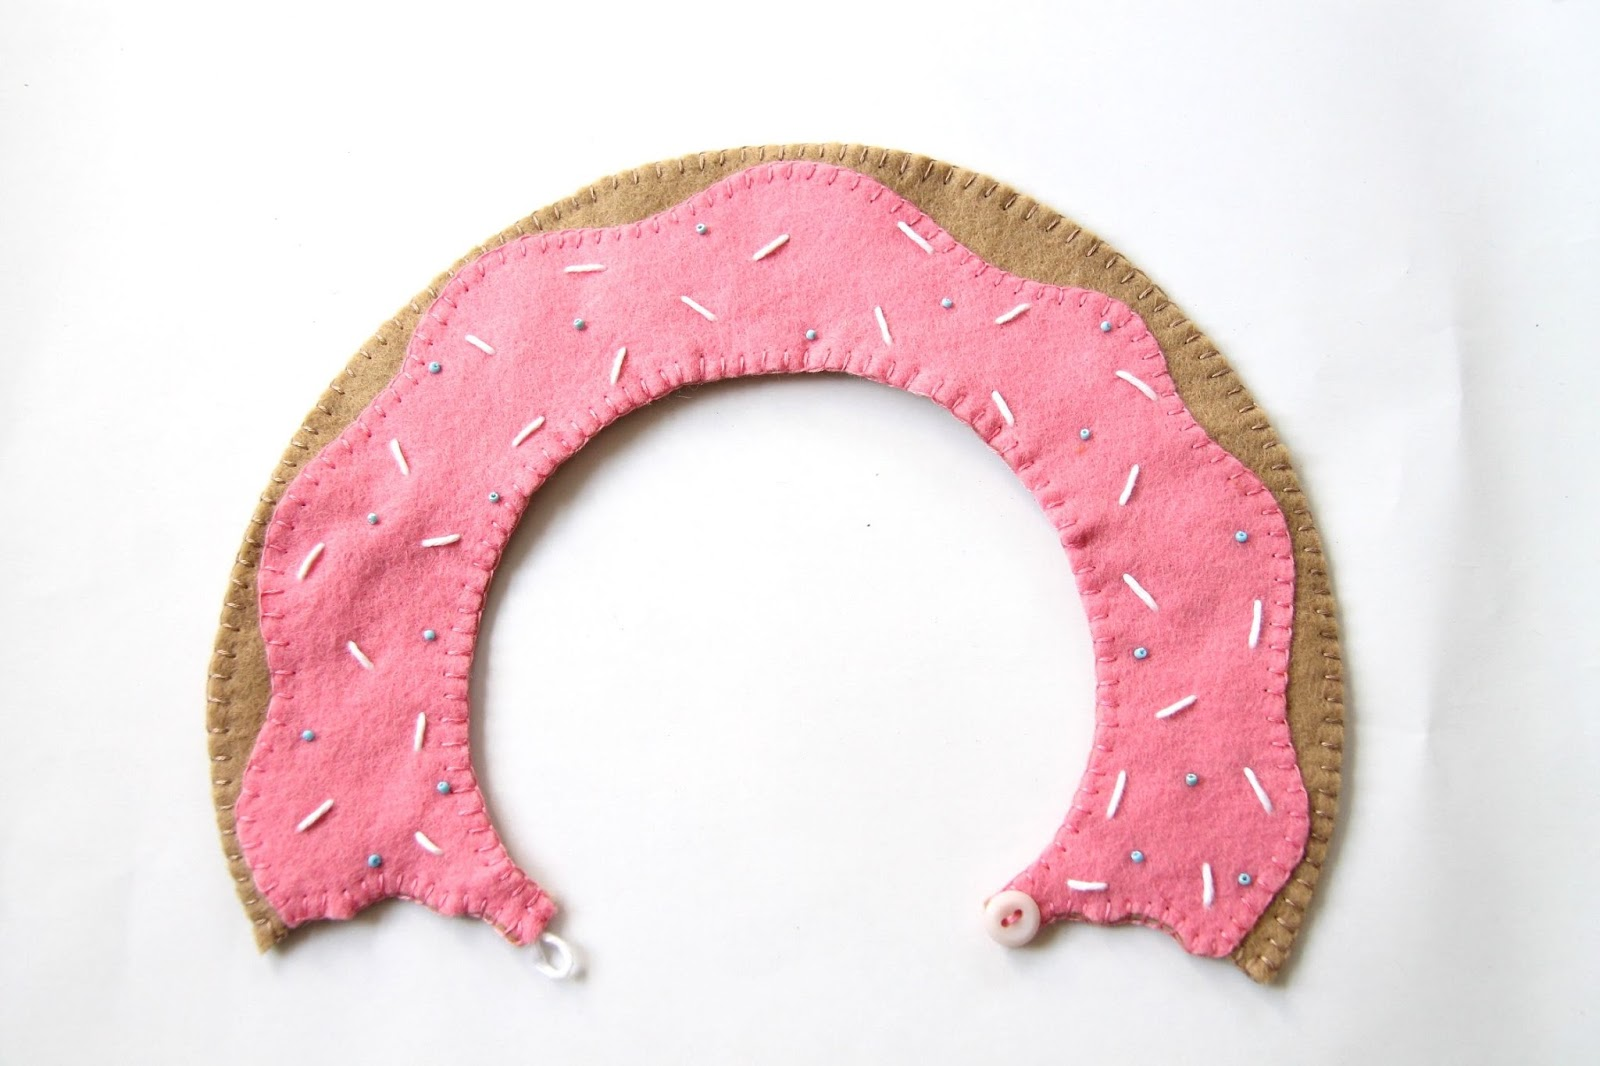 finished doughnut collar